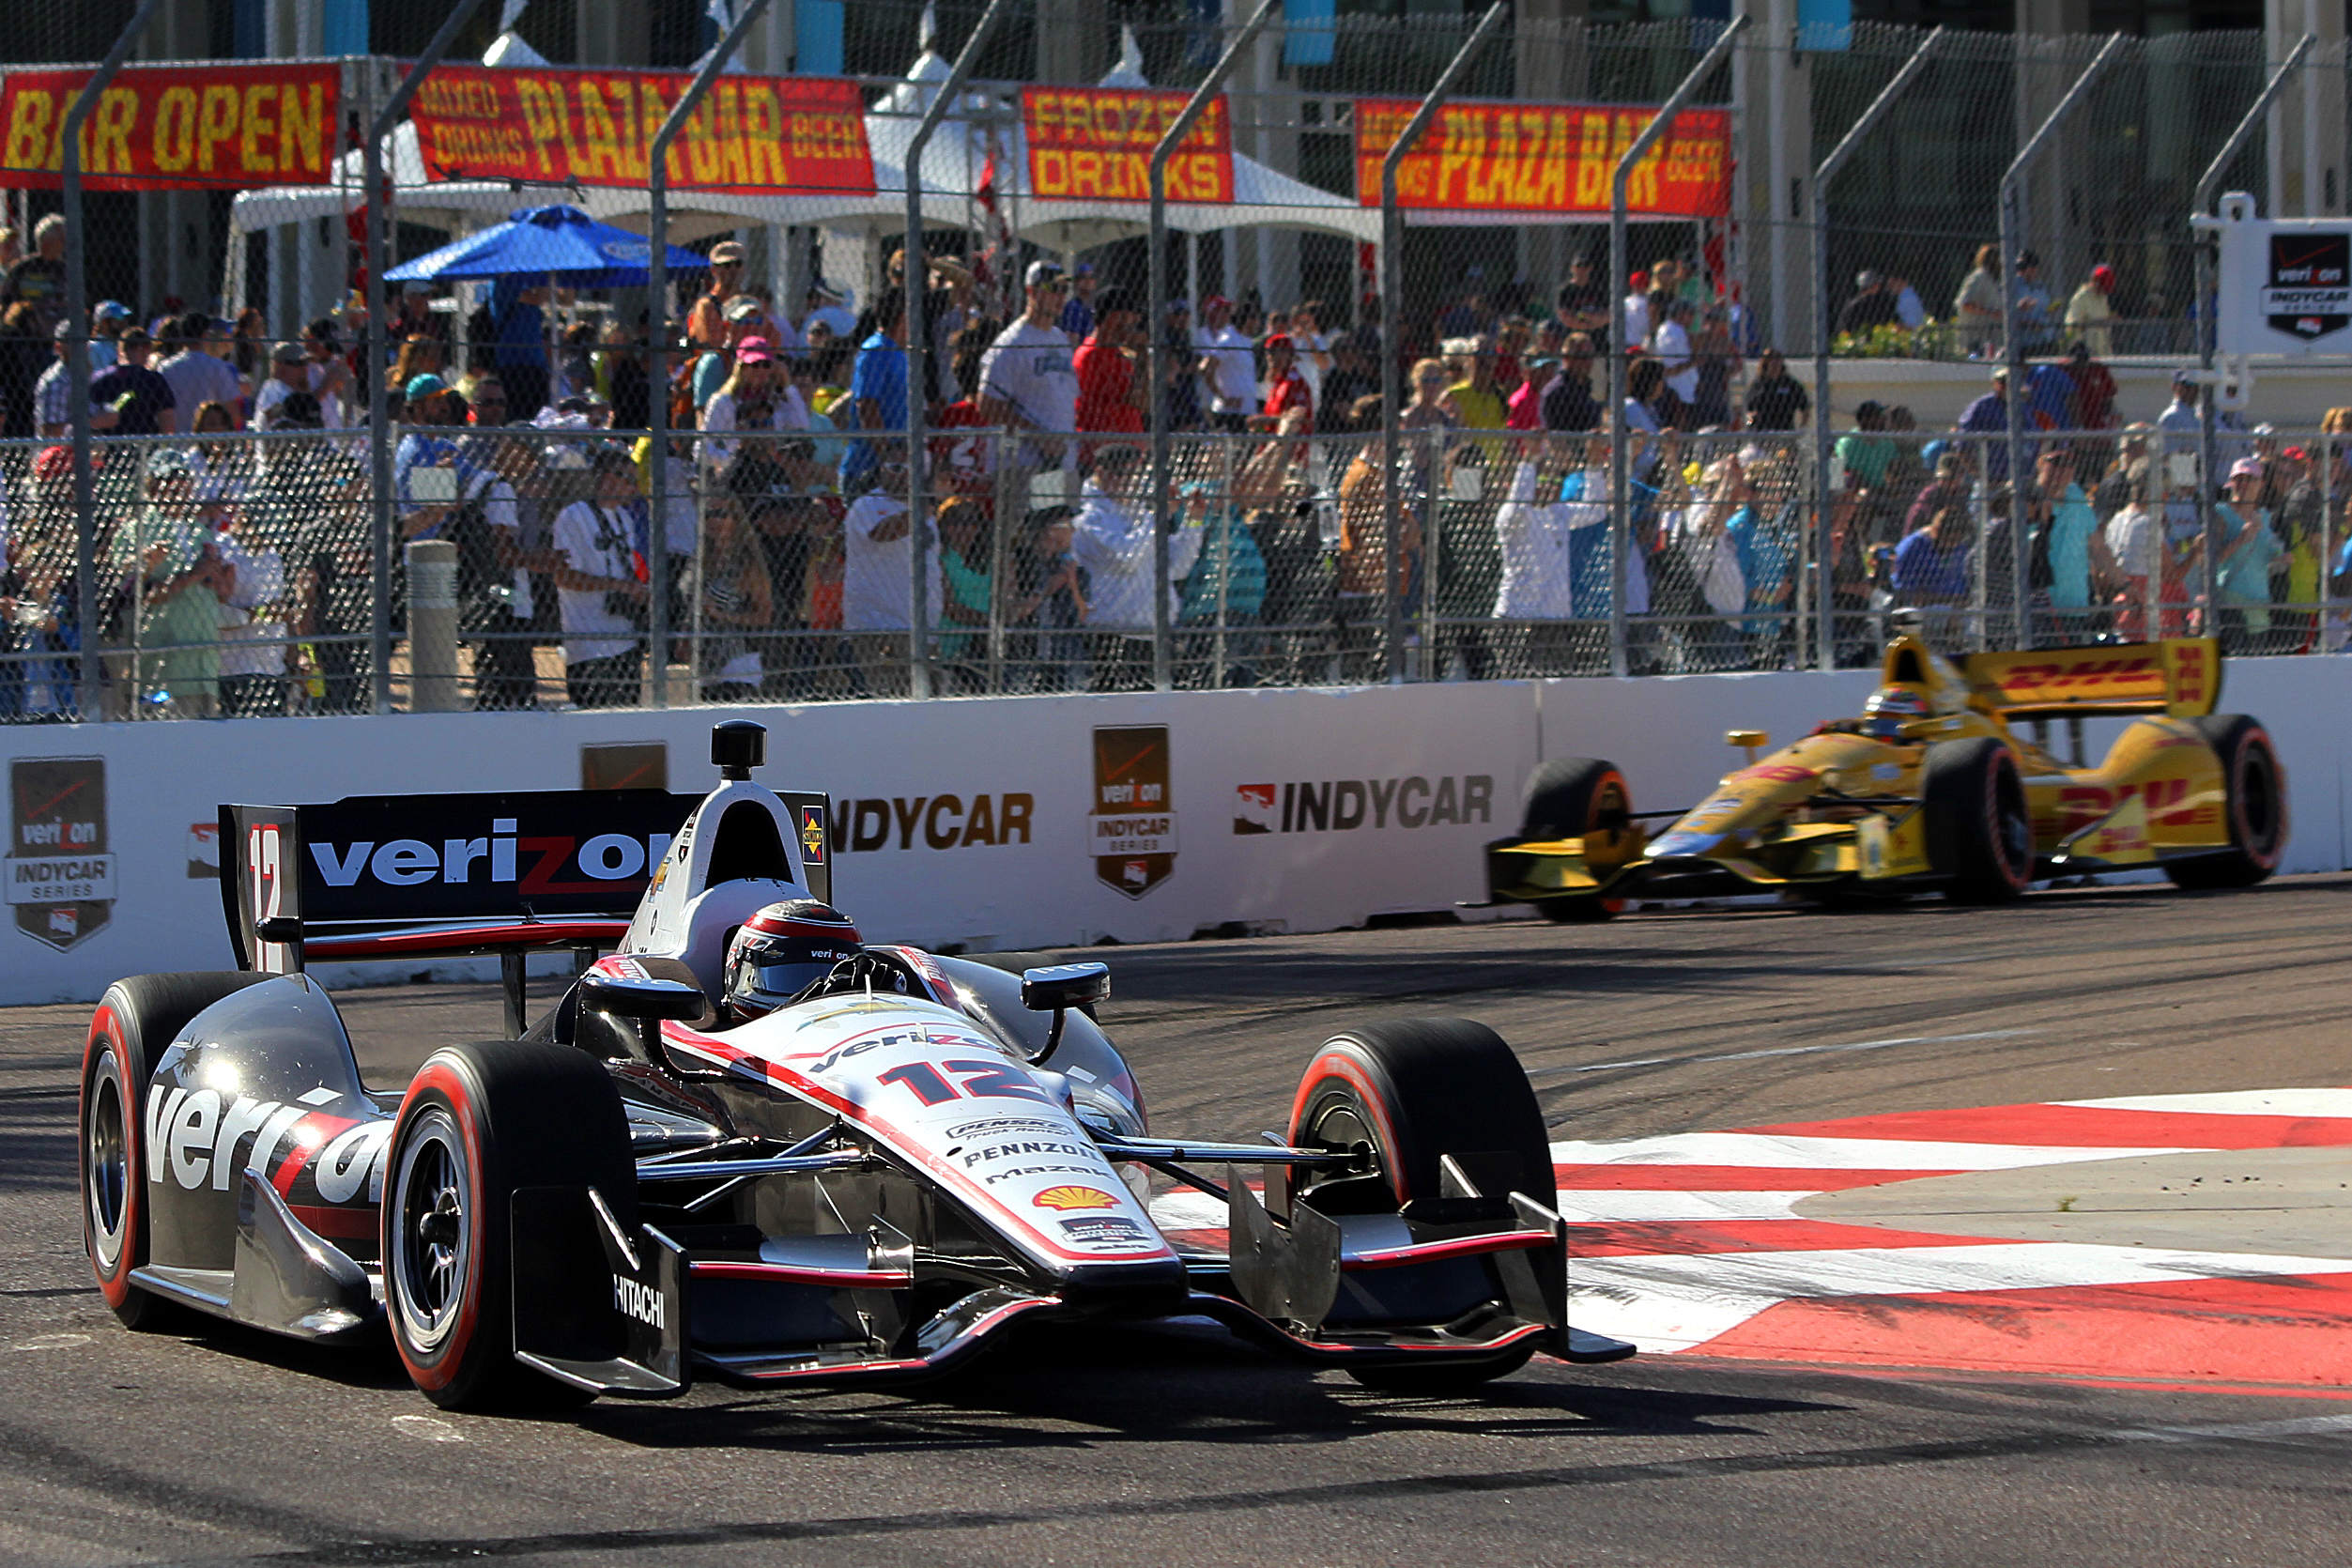 Will Power leads Ryan Hunter-Reay around Turn Ten in the closing laps of the IndyCar Firestone Grand Prix of St. Petersburg. (Chris Jasurek/Epoch Times)